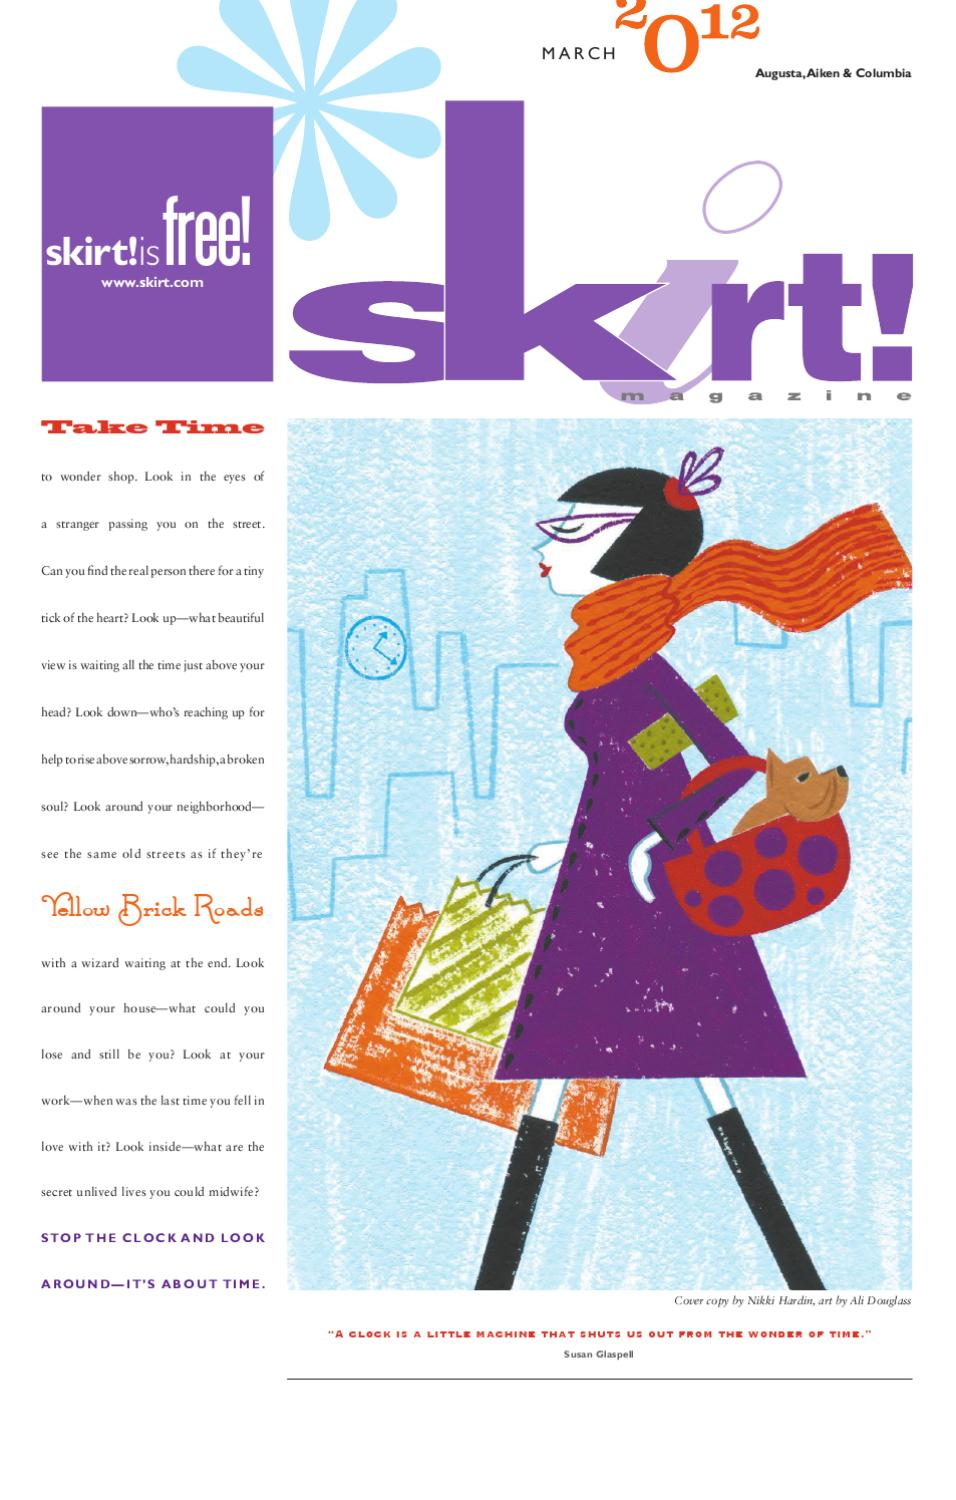 March 2012 Print Issue by skirt.com - issuu 926eb5fd6bc2a